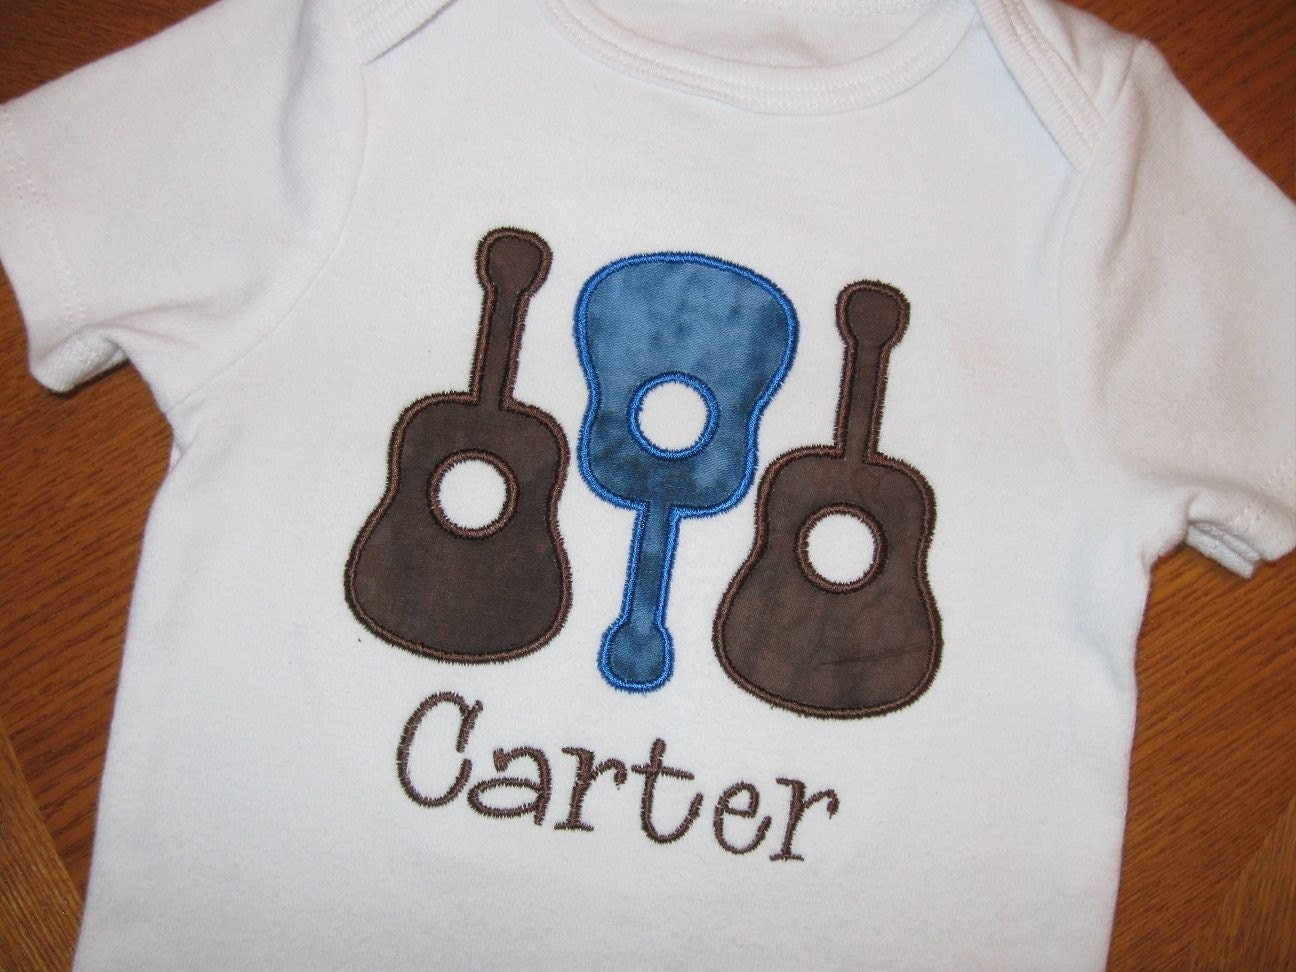 Guitars Shirt or Onesie - Personalized Embroidered Applique